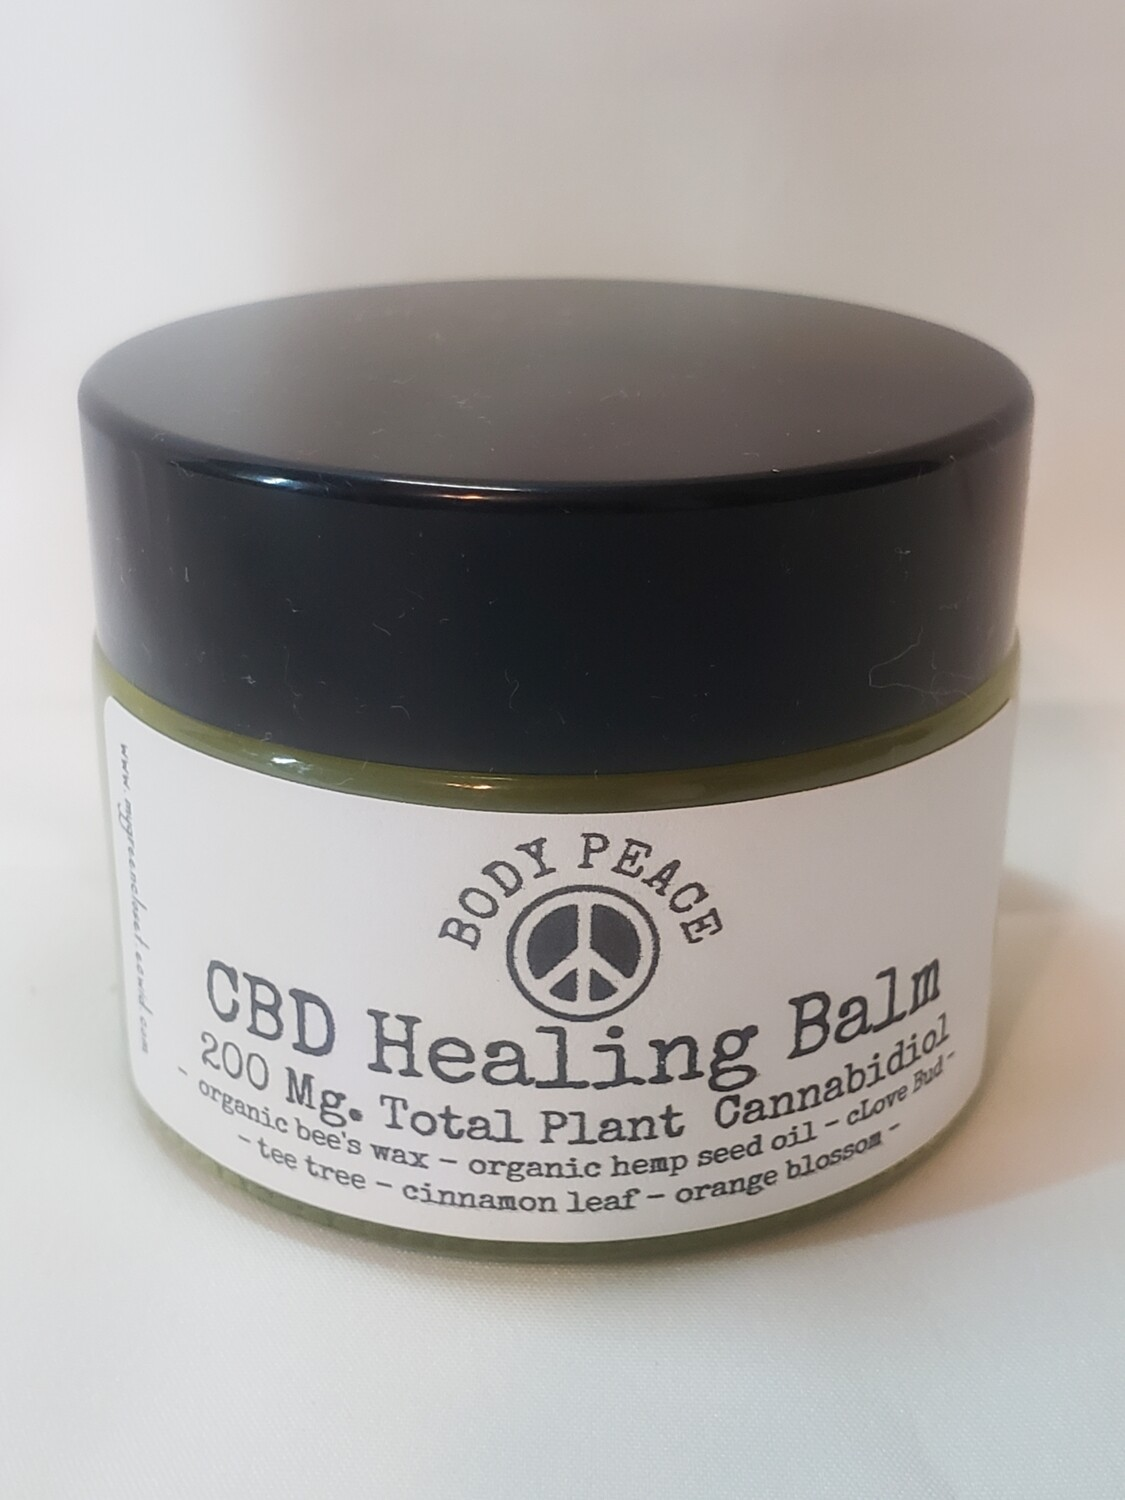 200mg Total Plant Hemp Extract  Healing Salve  * voted #1 in Pain Relieving topicals*